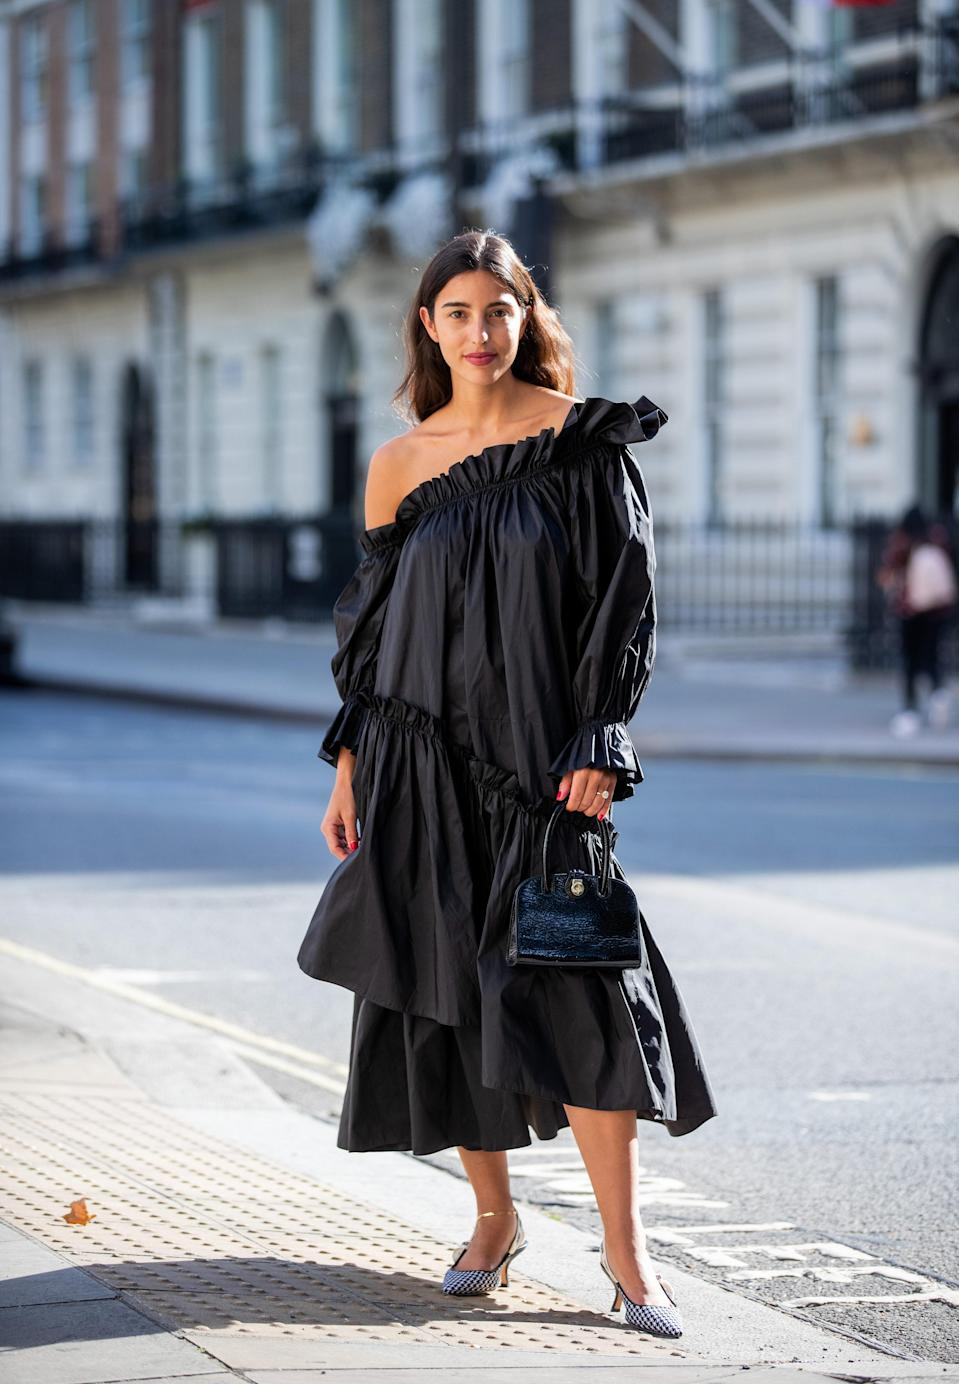 """Midis are the most versatile dresses you could own. The calf-length makes them comfortable enough to wear for casual activities and suitable for more formal occasions. Take your pick from classic <a href=""""https://www.glamour.com/gallery/best-shirt-dresses?mbid=synd_yahoo_rss"""" rel=""""nofollow noopener"""" target=""""_blank"""" data-ylk=""""slk:shirt dresses"""" class=""""link rapid-noclick-resp"""">shirt dresses</a> or trendier silhouettes in bold, <a href=""""https://www.glamour.com/story/70s-fashion-trends?mbid=synd_yahoo_rss"""" rel=""""nofollow noopener"""" target=""""_blank"""" data-ylk=""""slk:'70s-inspired"""" class=""""link rapid-noclick-resp"""">'70s-inspired</a> prints."""